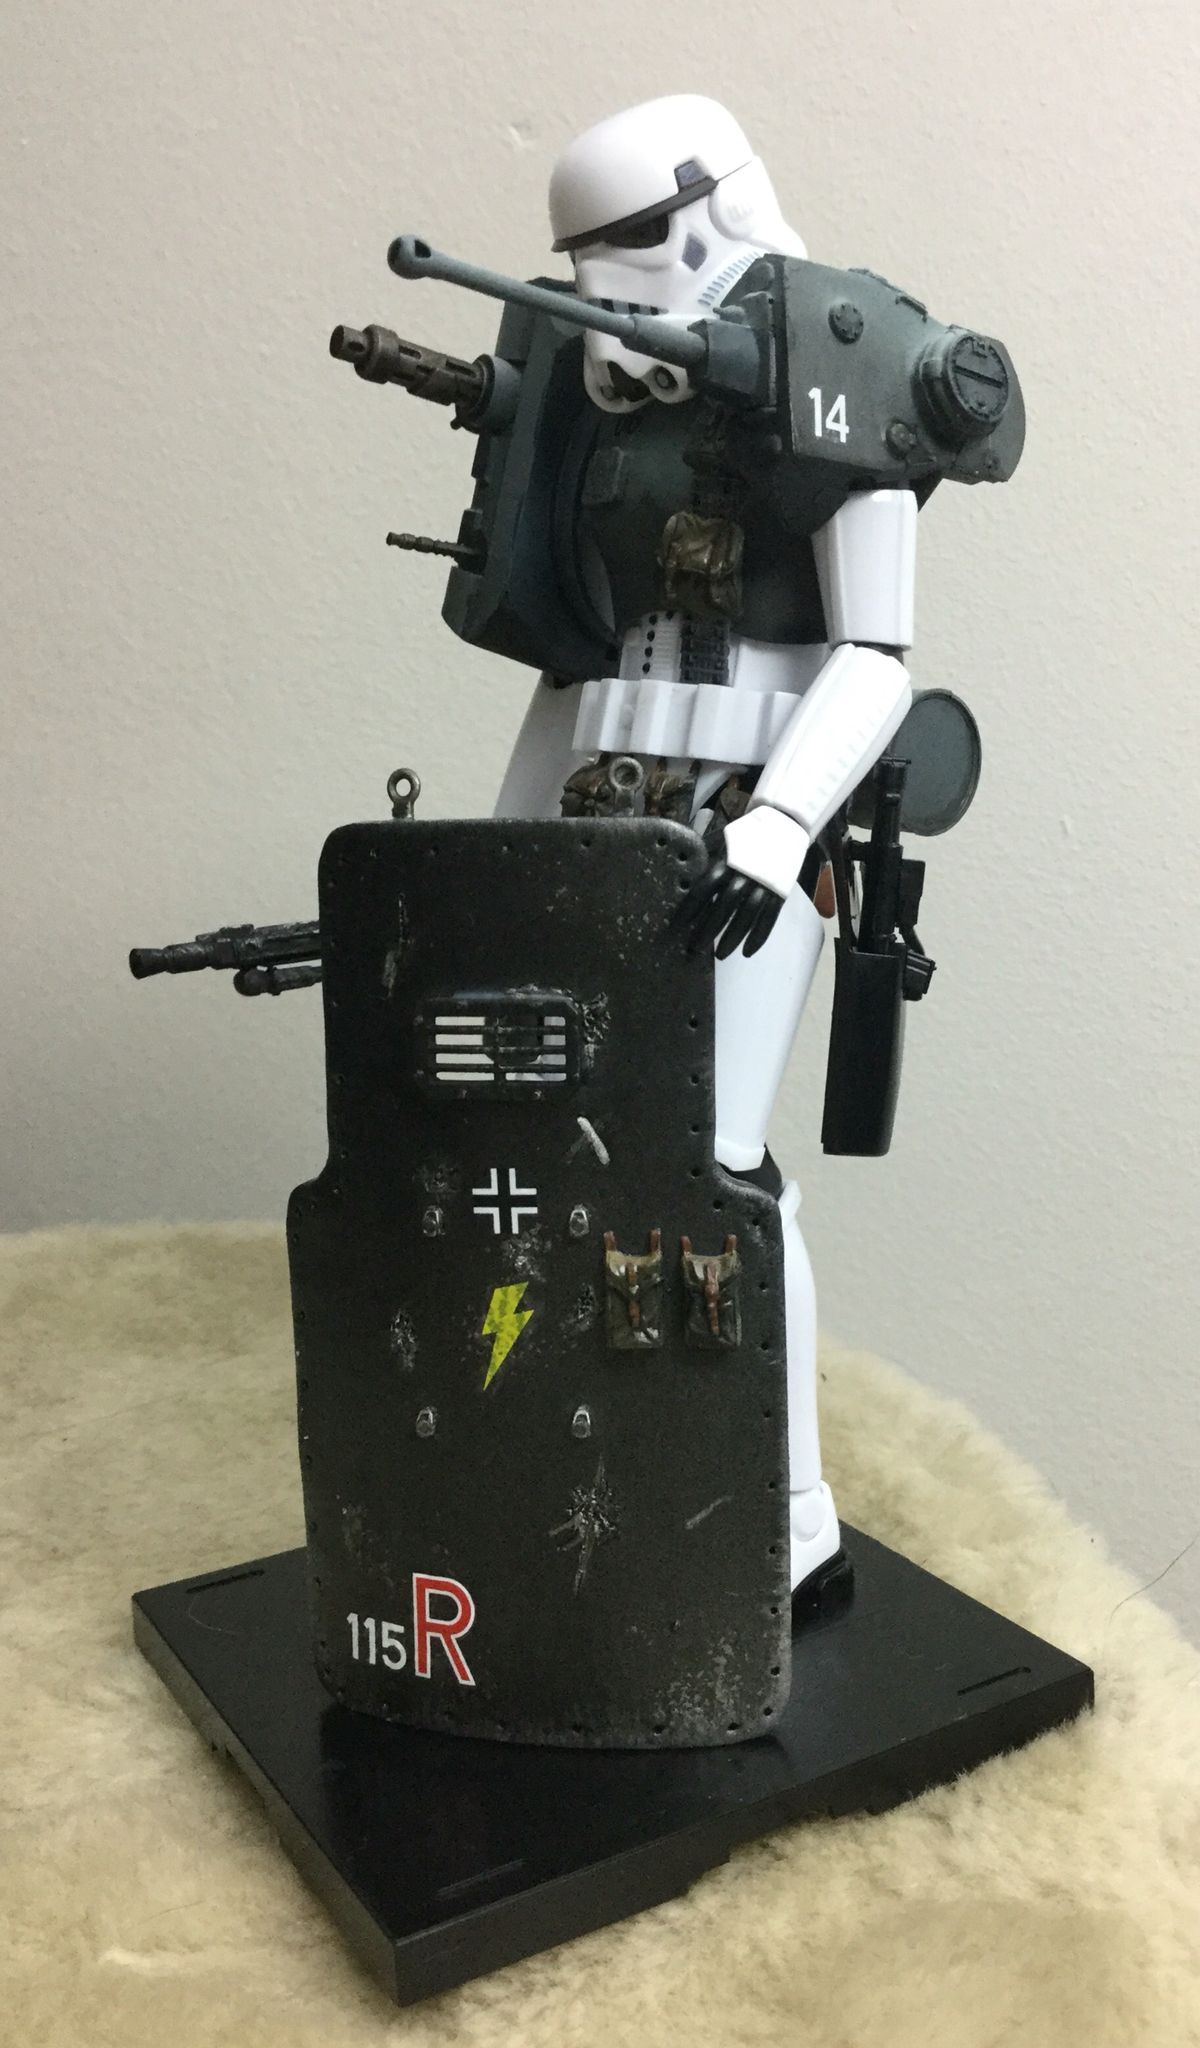 A quick three day custom built Third Reich Mecha-Trooper I made. Built from a Bandai Stormtrooper kit, two regular tank kits (Tamiya and Airfix) and a Tamita vehicles accessories kit (bags and pouches). The ballistic shield I scratch built using Fimo and spare bits from the other kits.